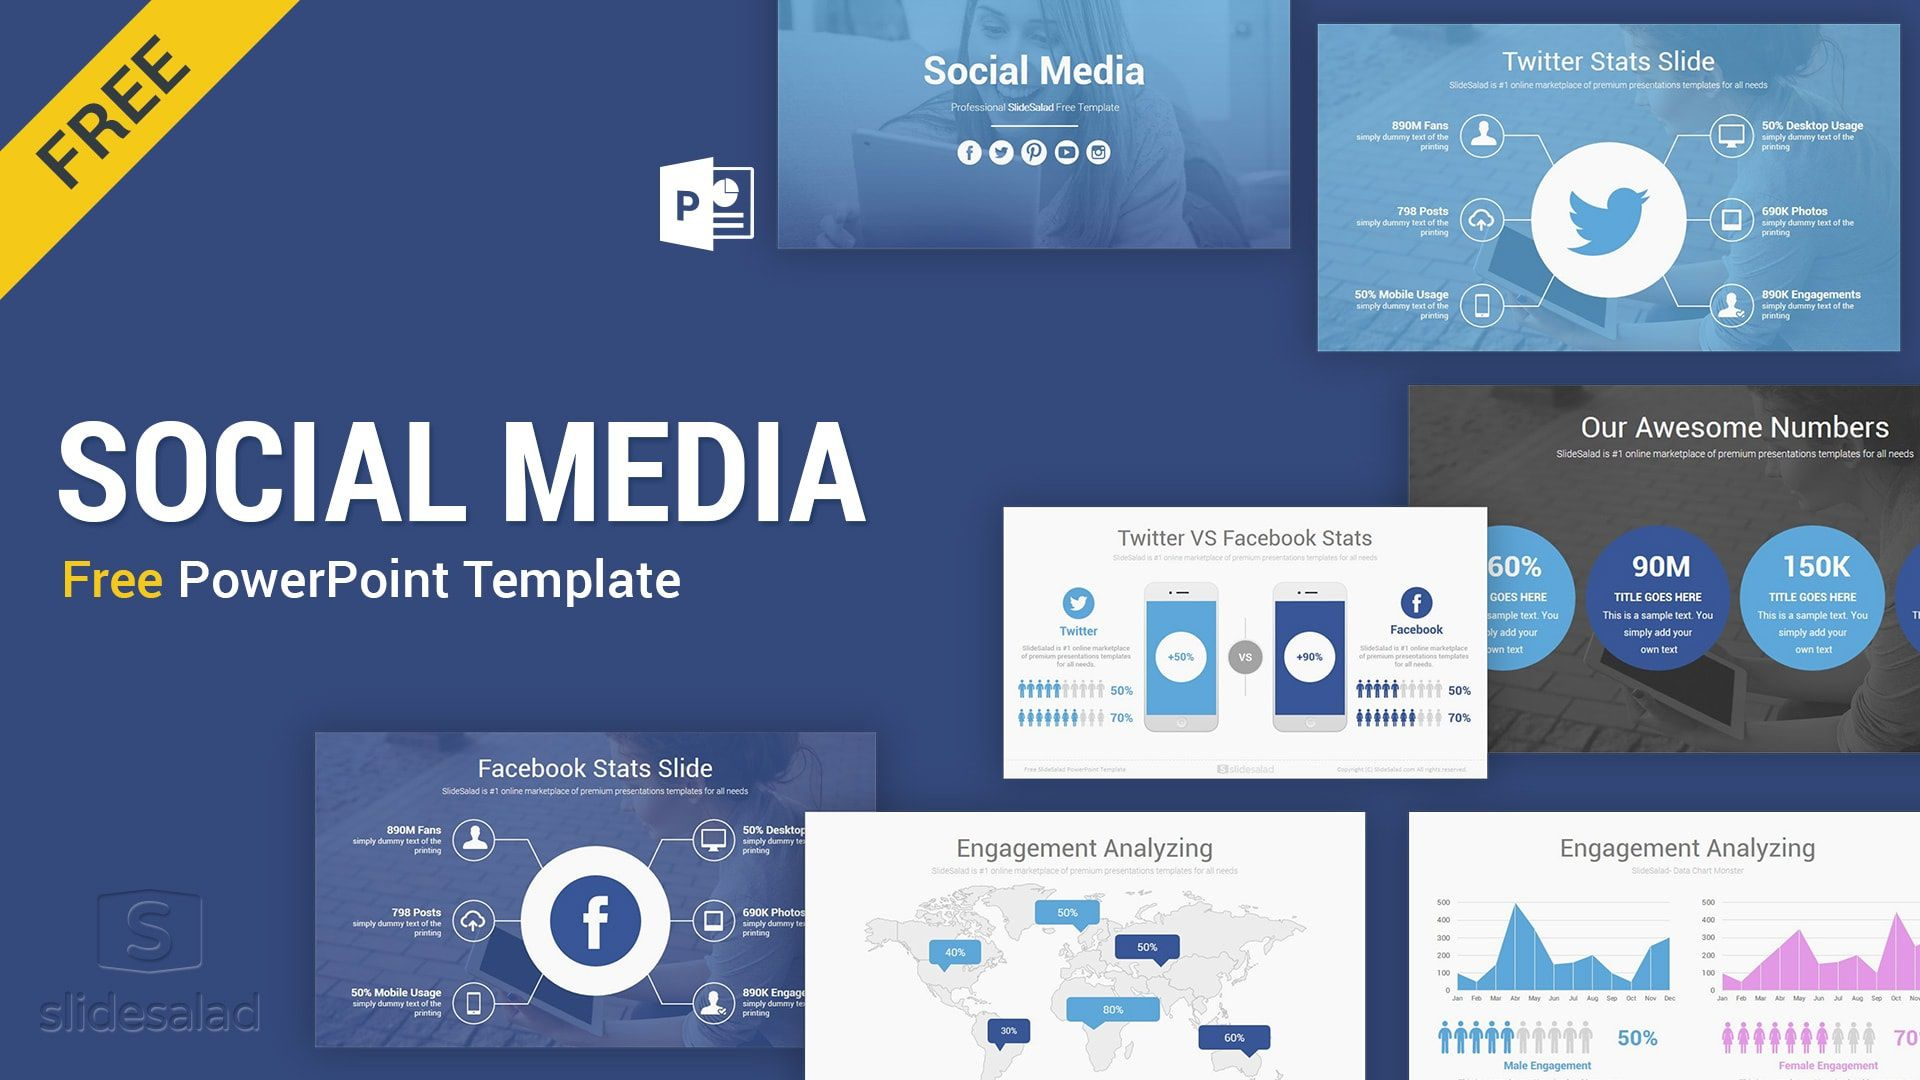 008 Formidable Social Media Template Free Download High Definition  Lower Third CsFull